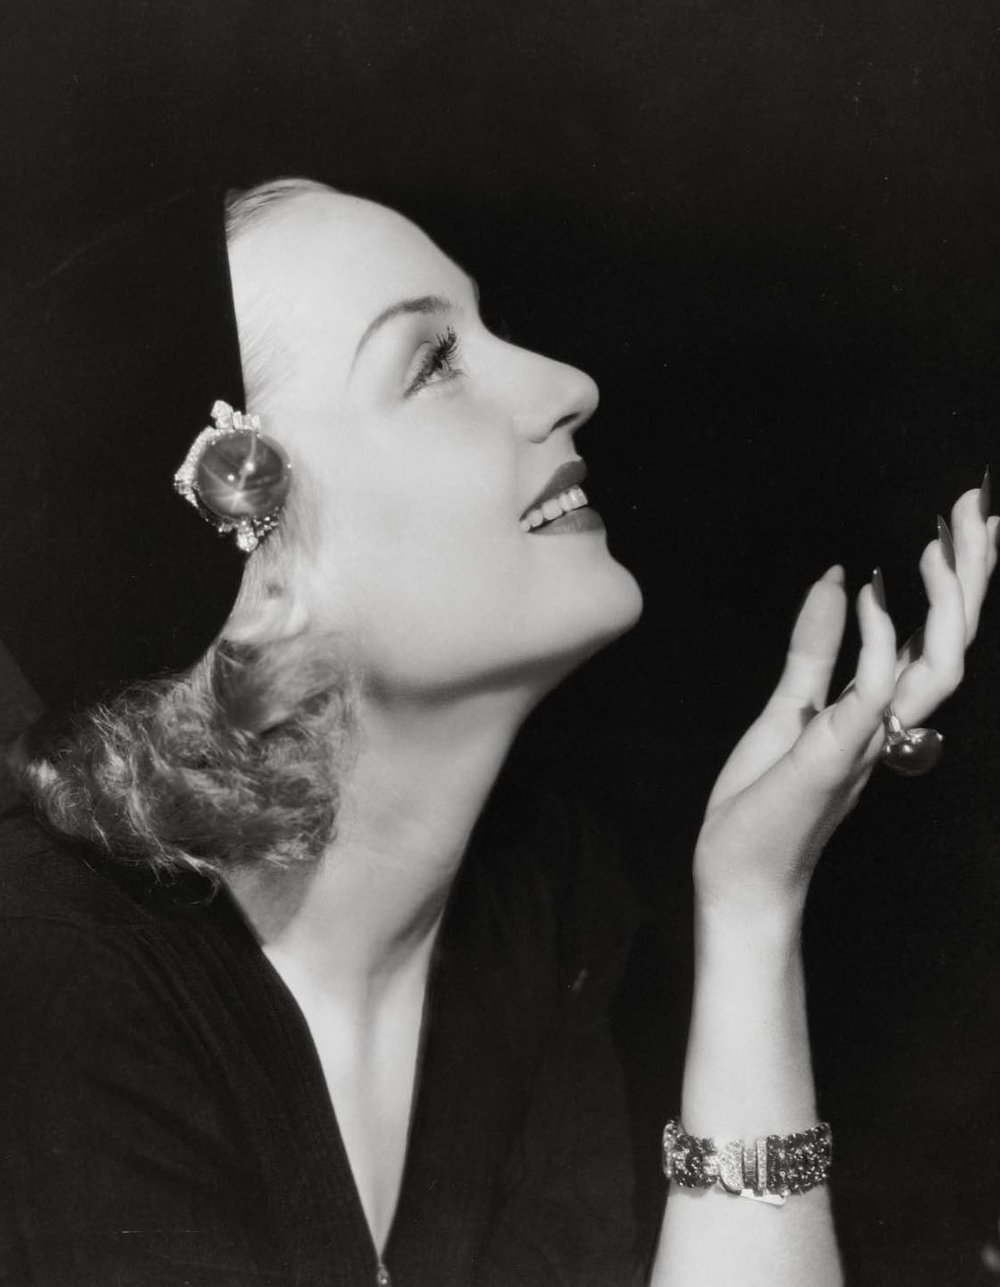 Carole Lombard wearing the brooch clipped to her hat.